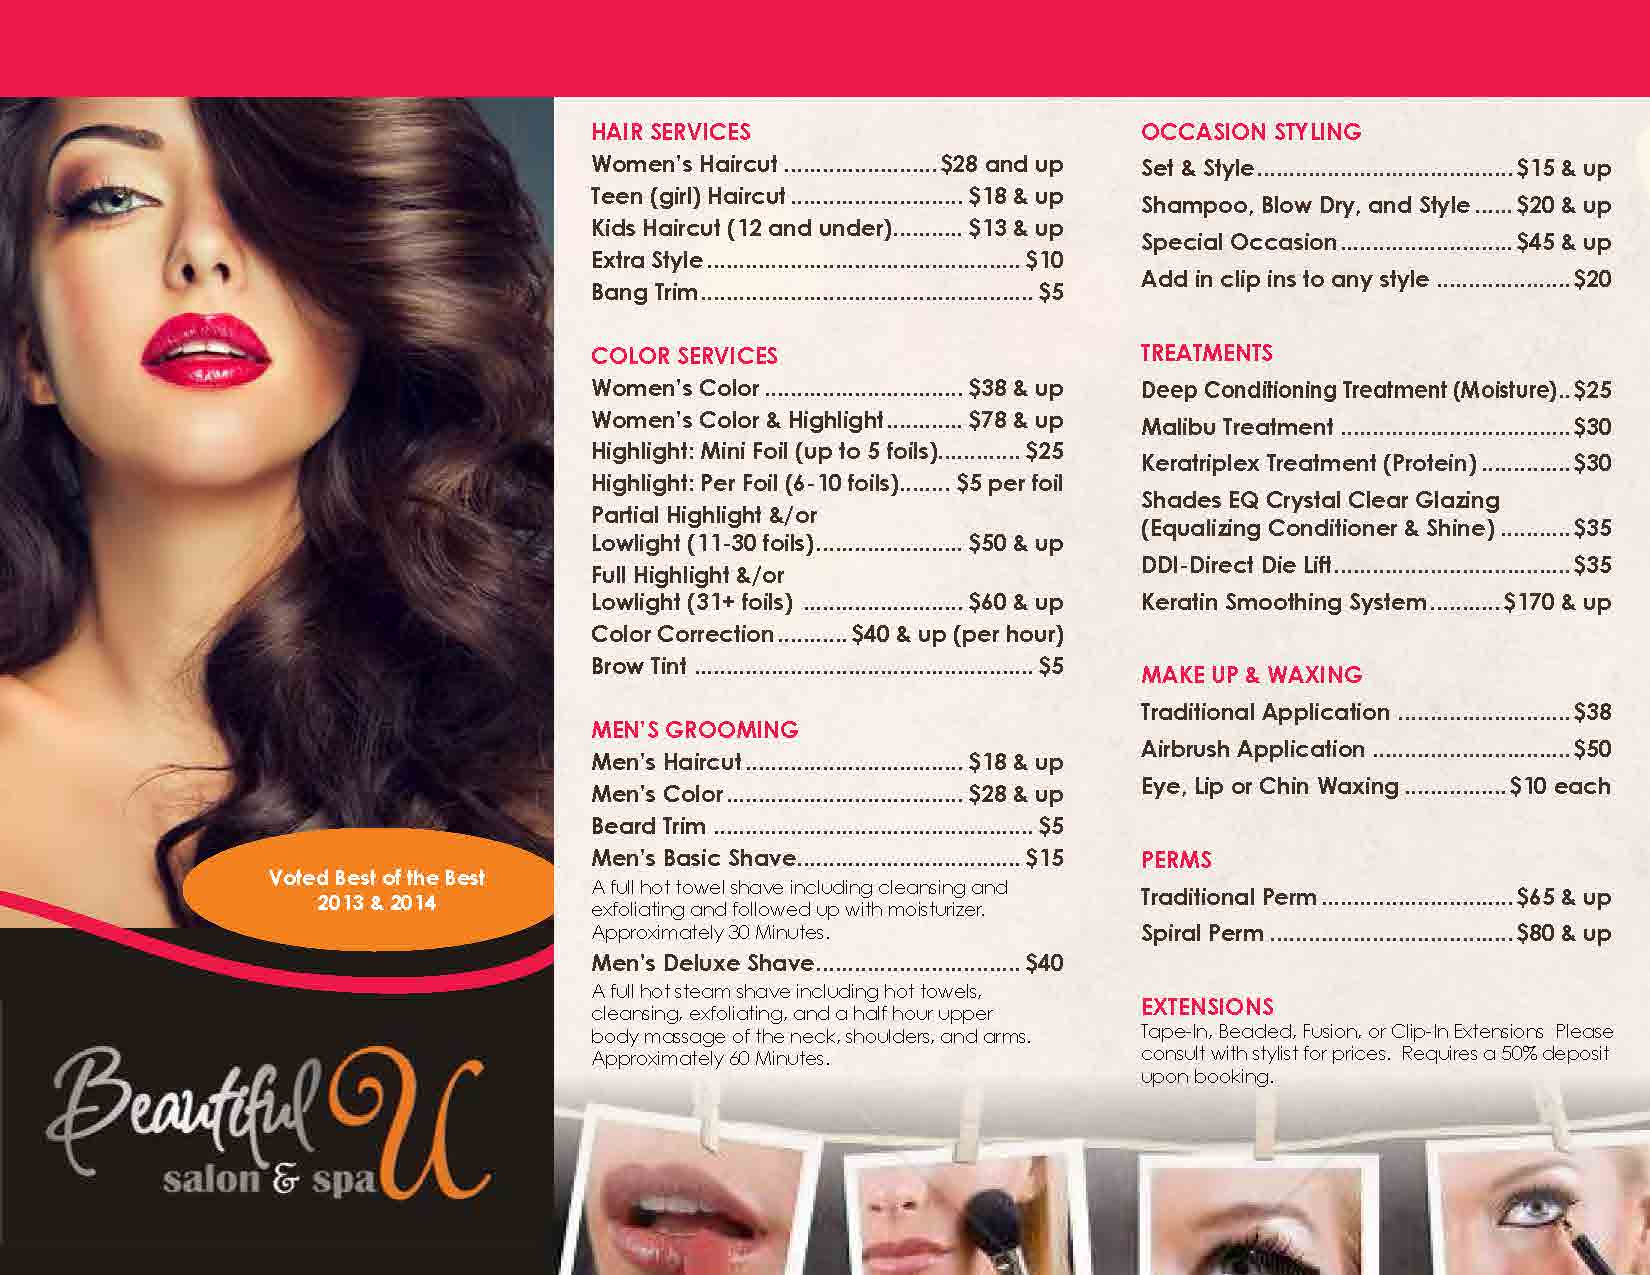 Hair salon listbeauty hair salons for Hair salon 2